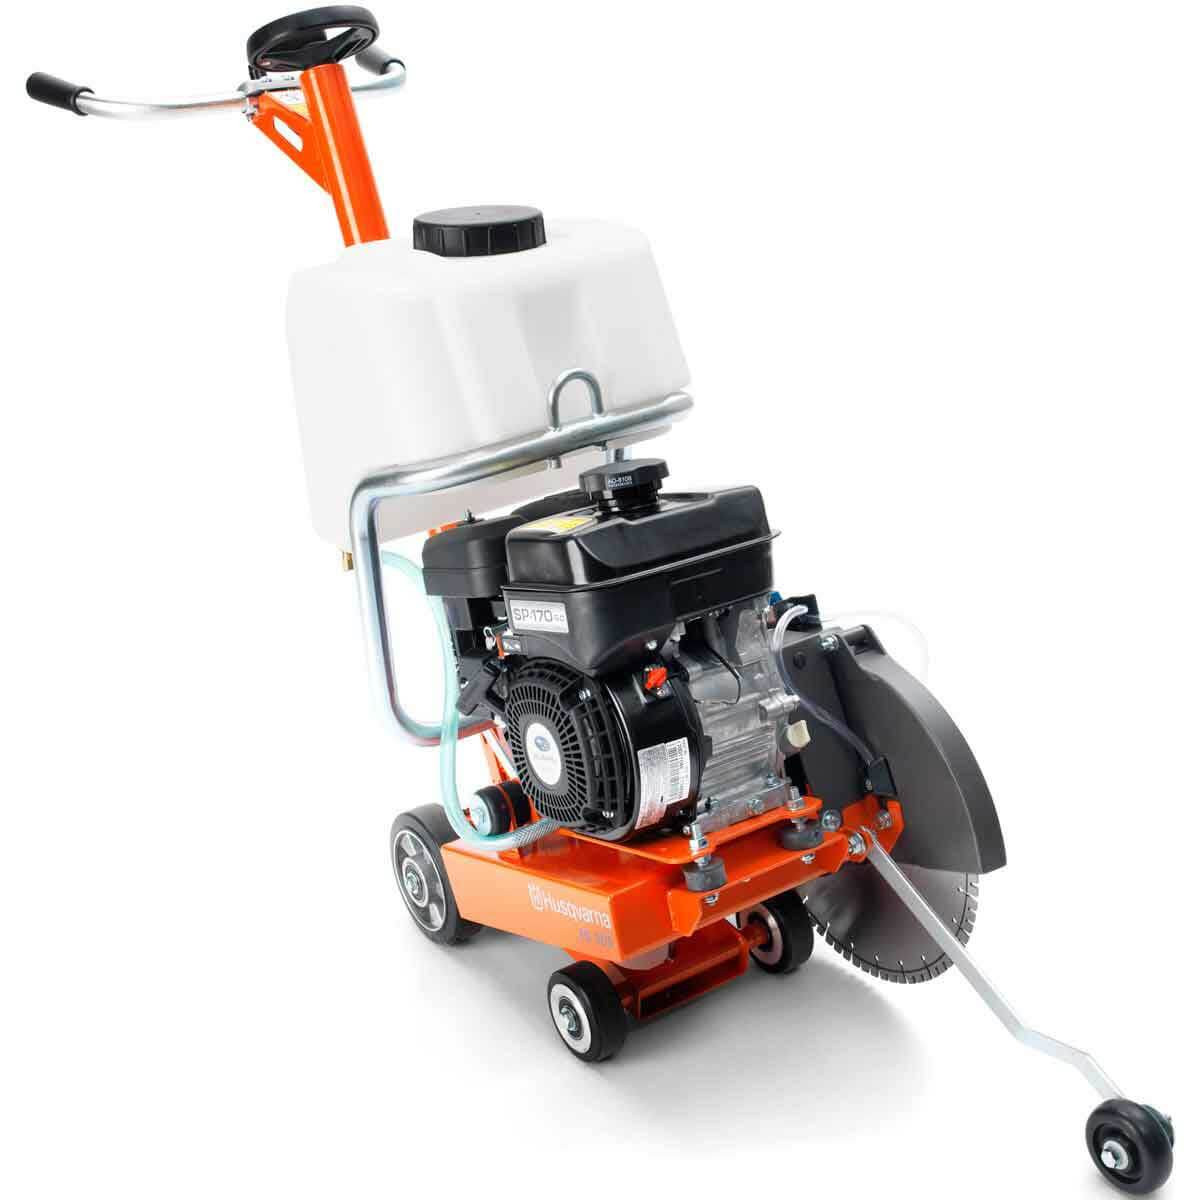 Husqvarna FS309 Saw water tank